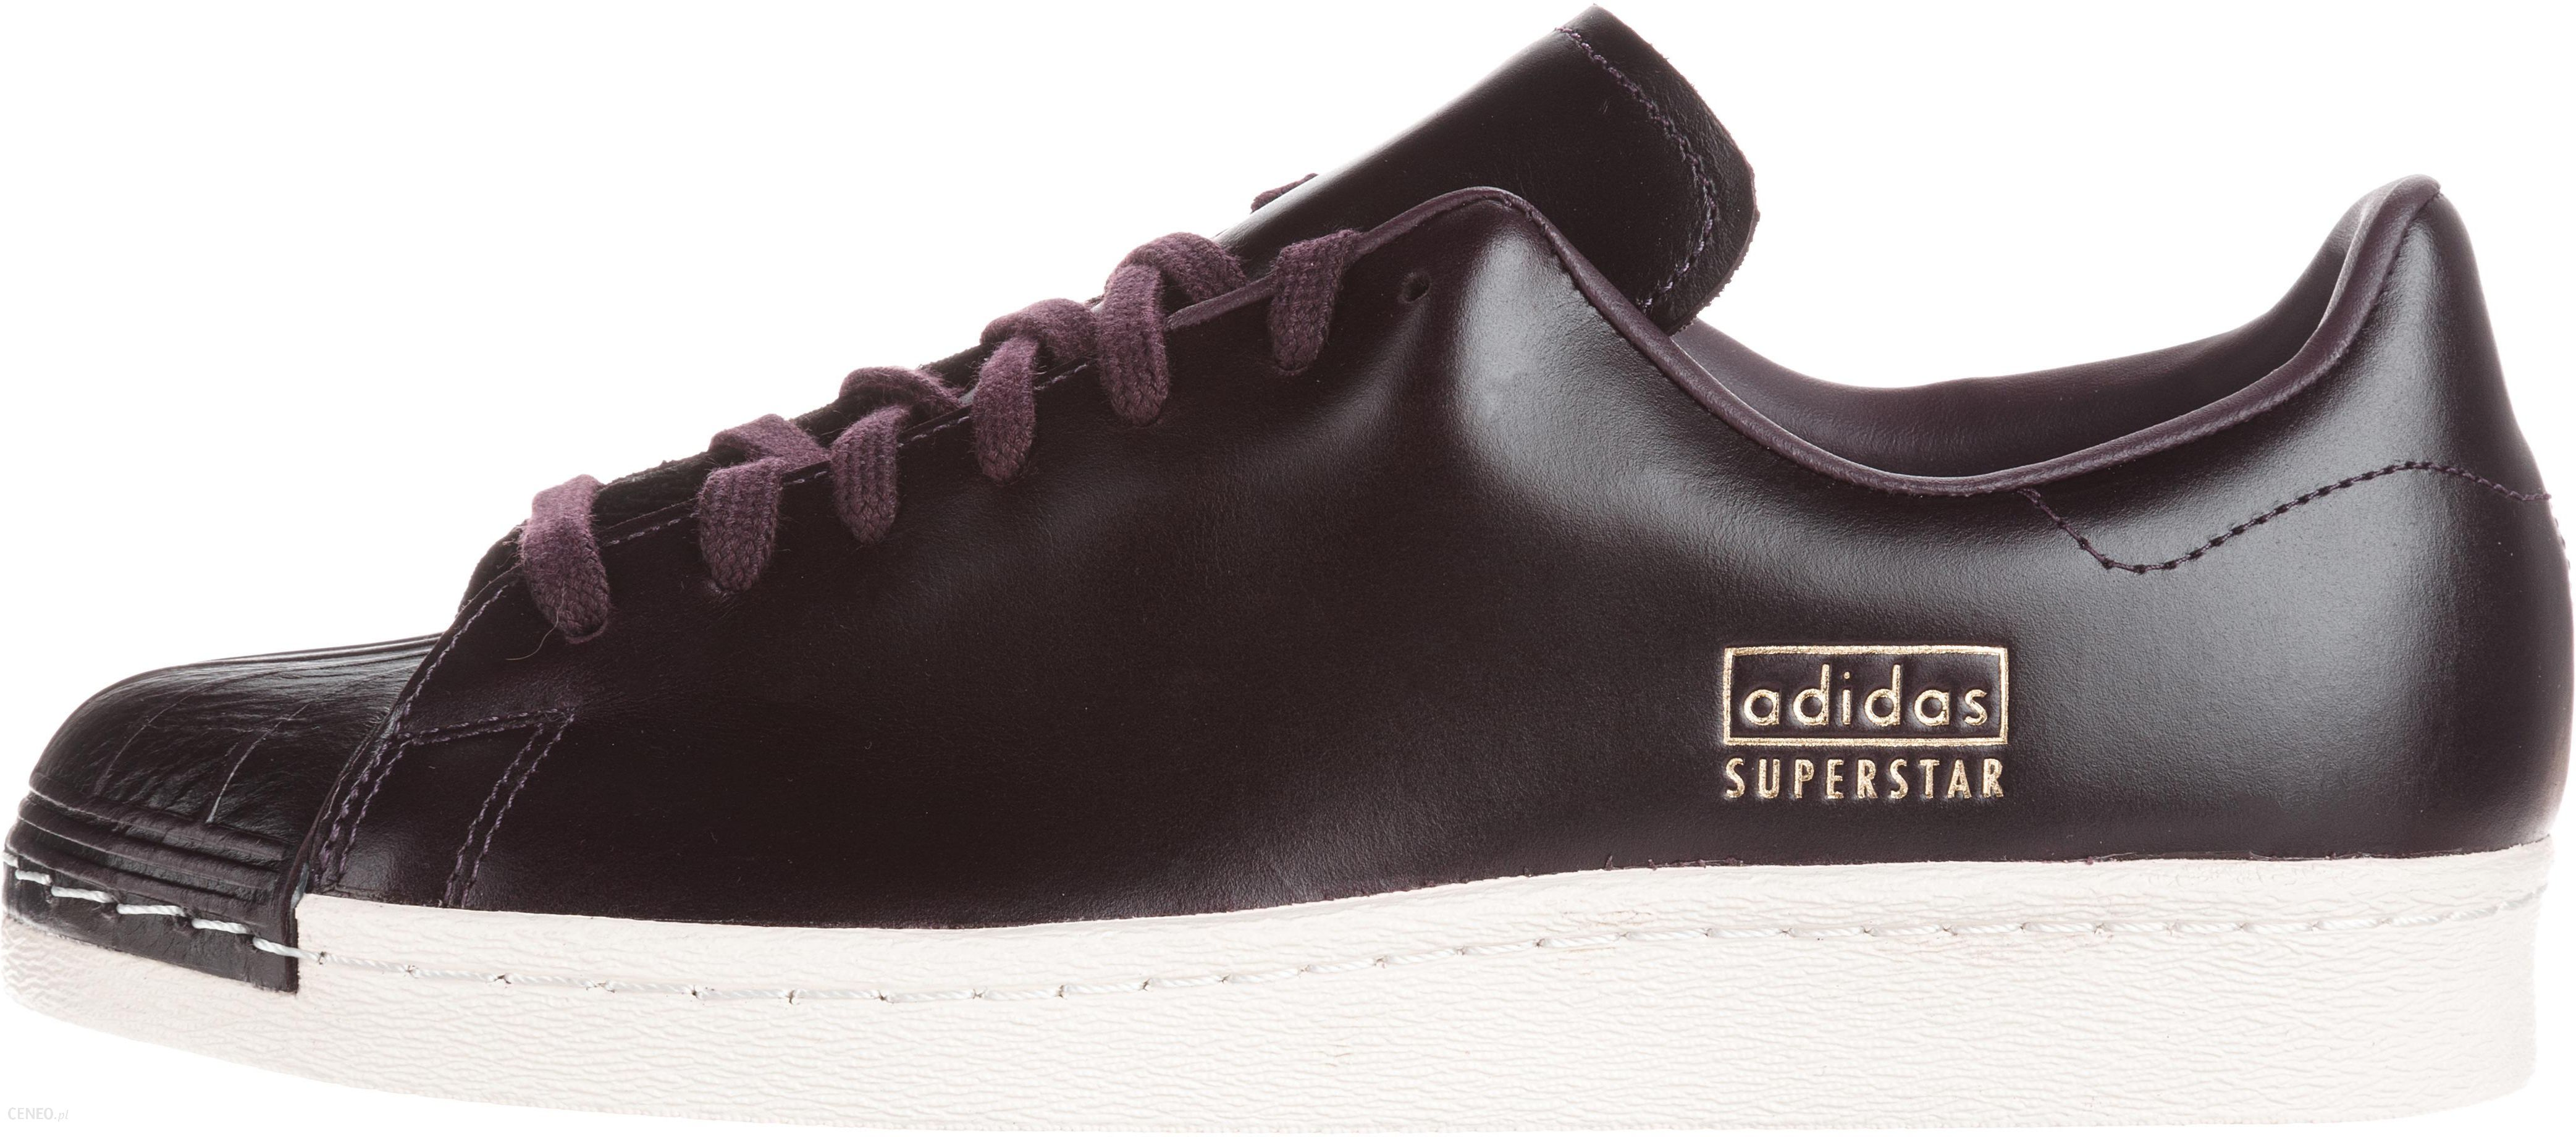 Adidas Originals Superstar 80's Clean Sneakers Fioletowy 40 23 Ceny i opinie Ceneo.pl